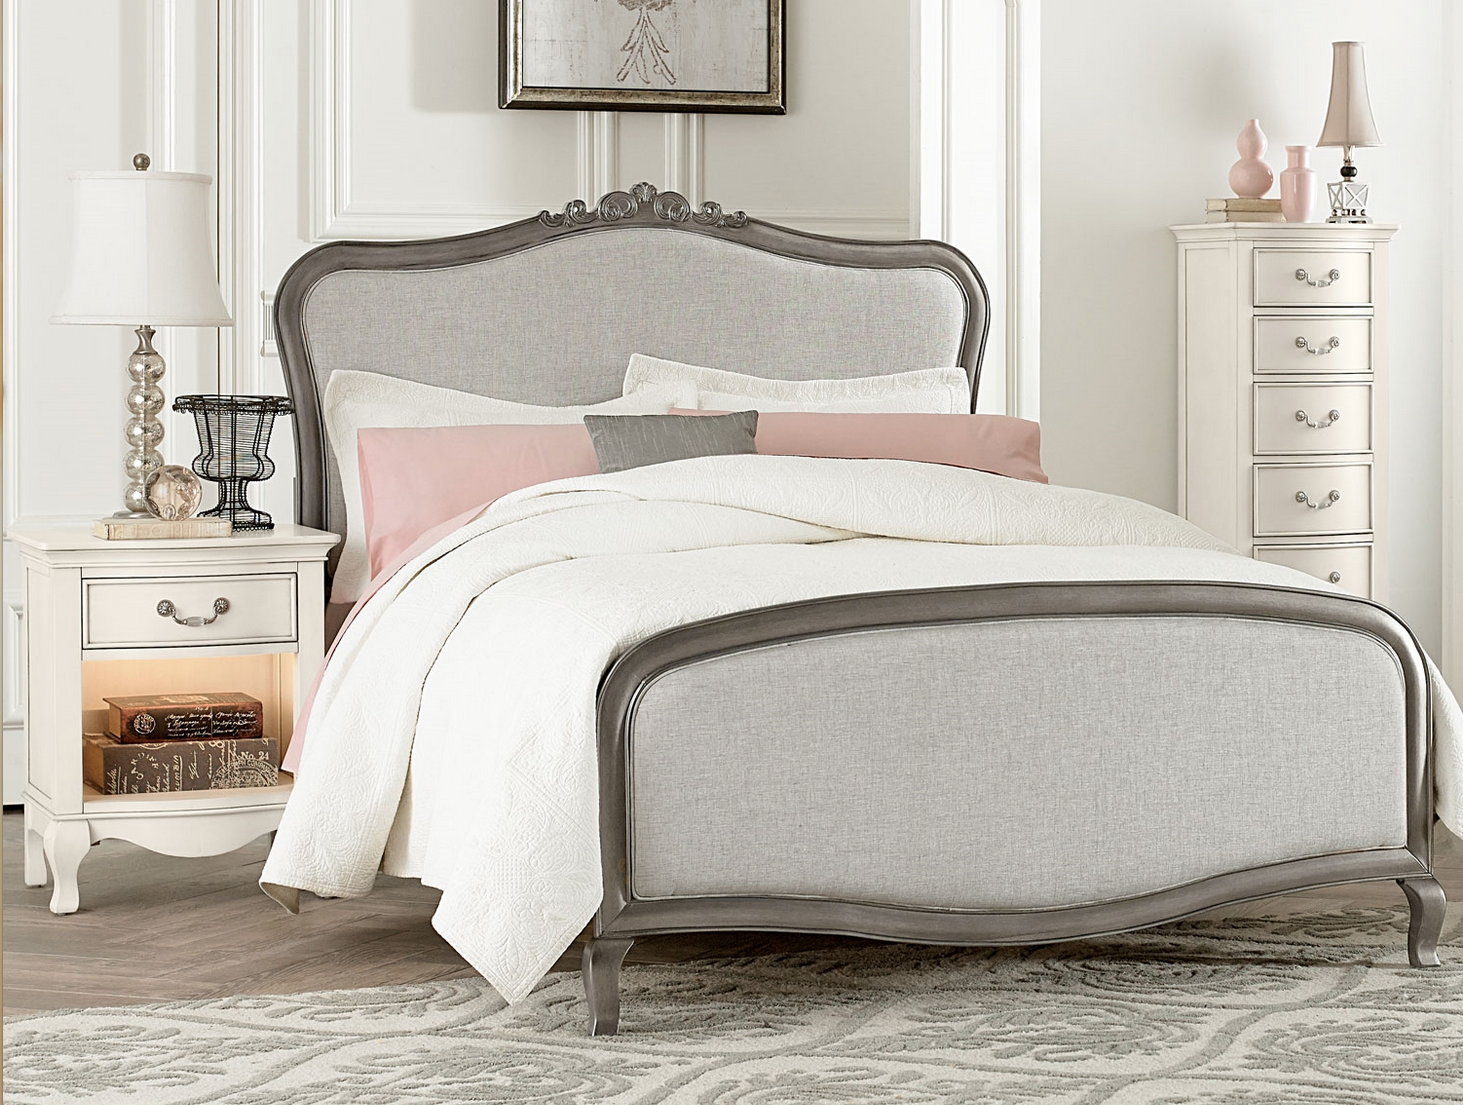 Alexandria Collection Full Size Upholstered Bed In Antique Silver .